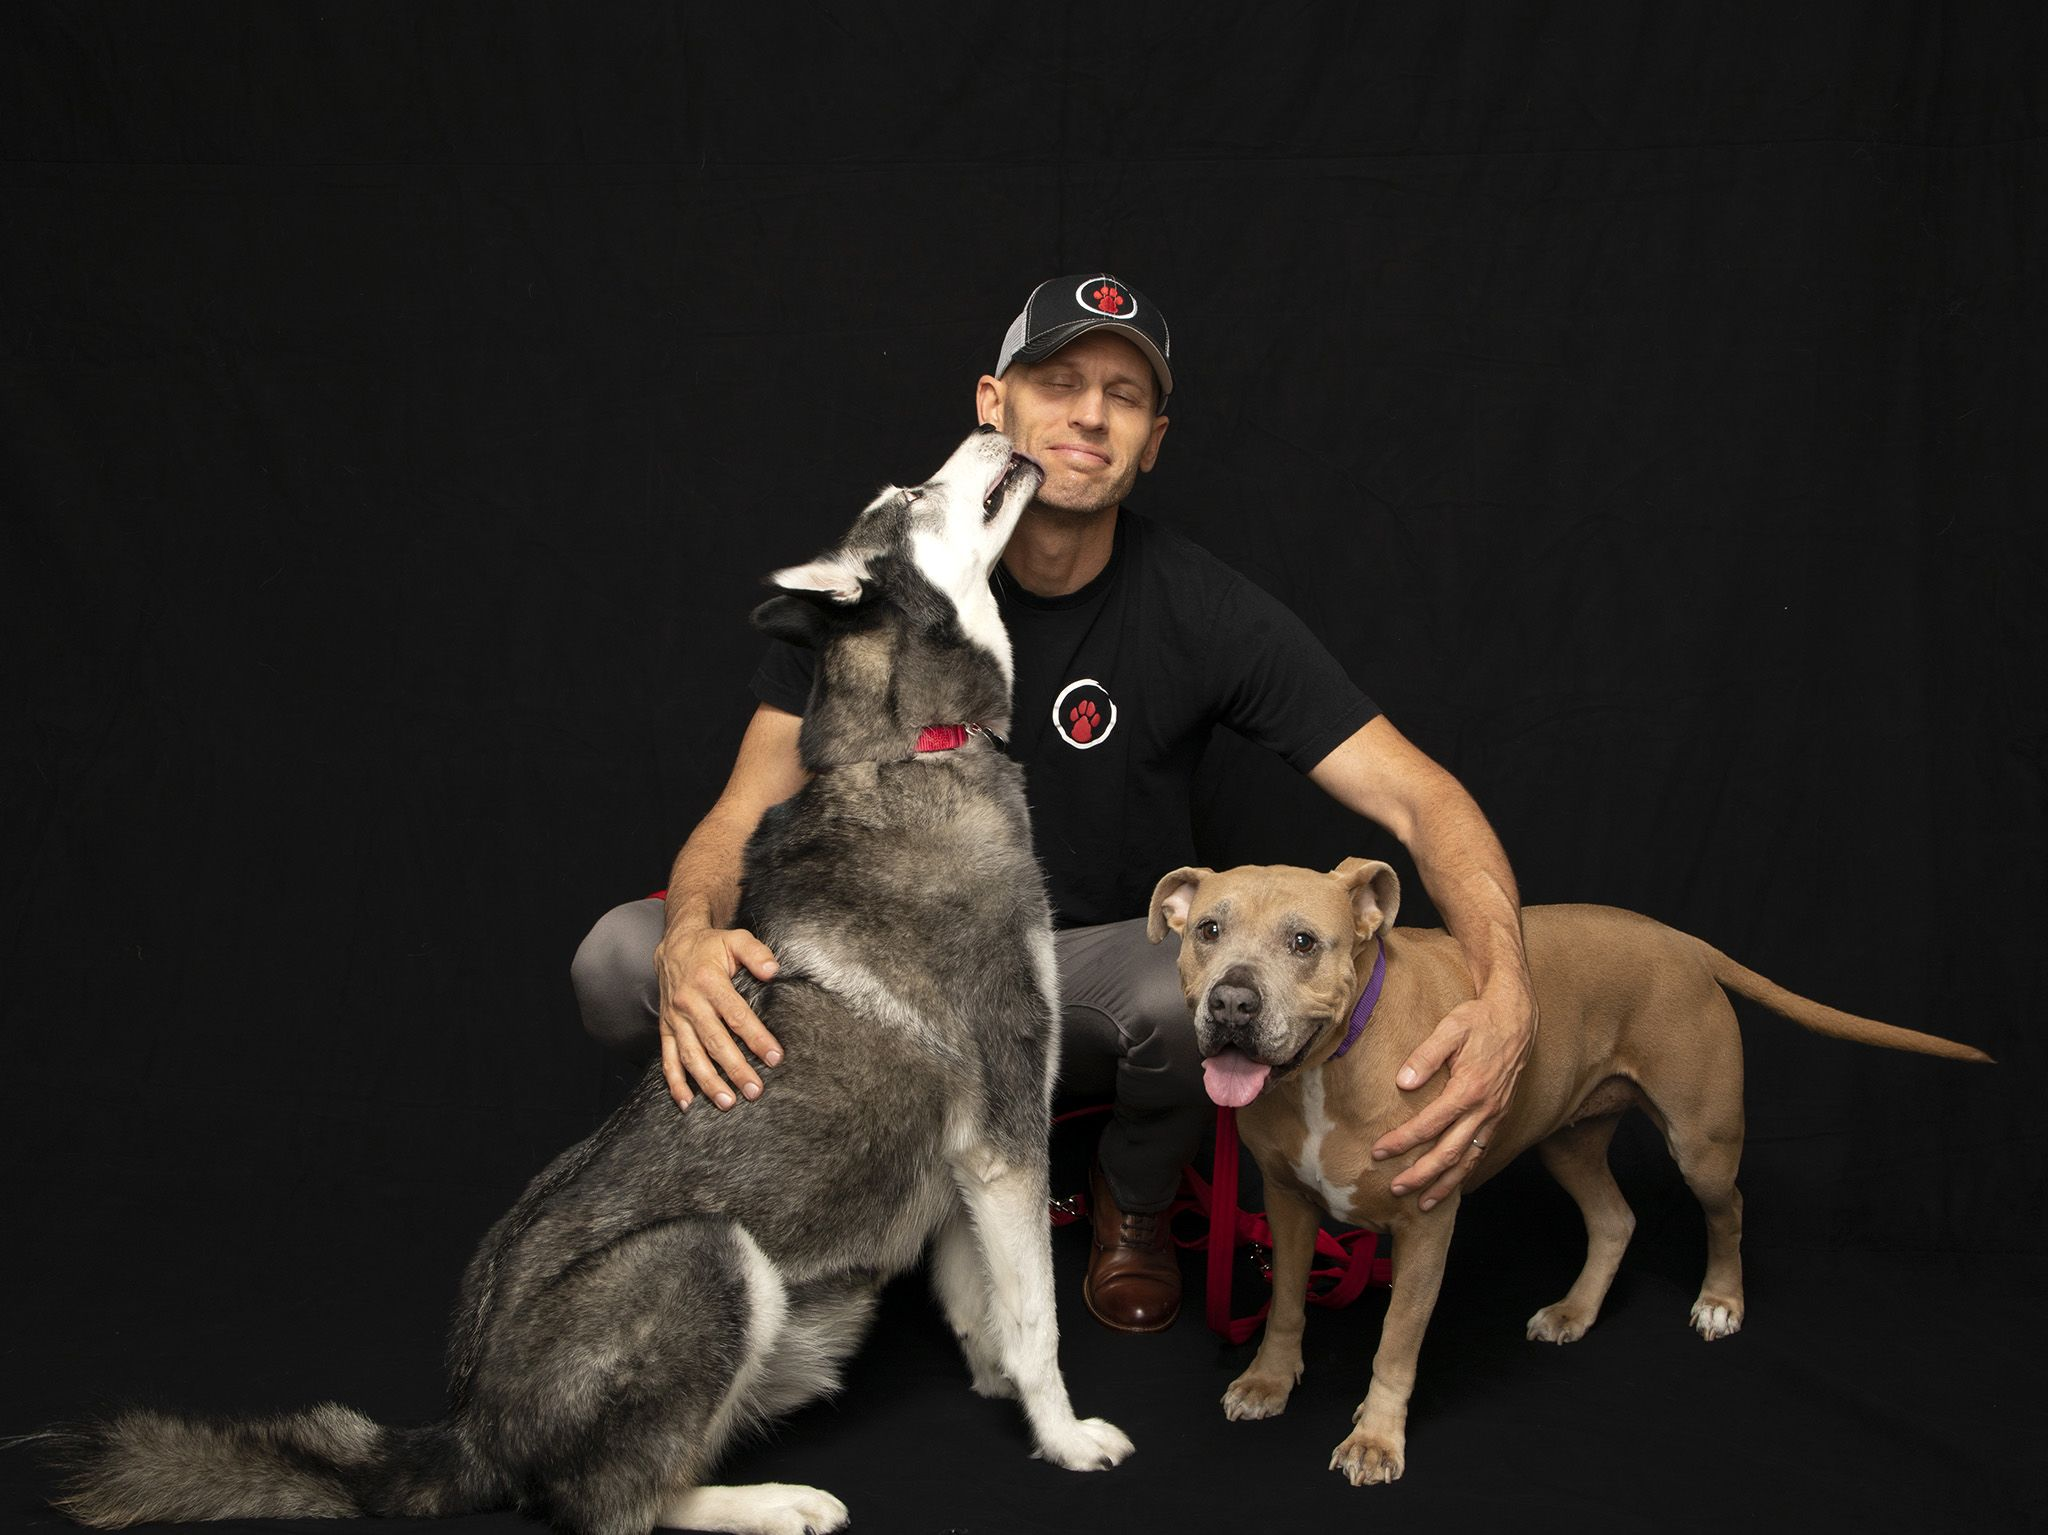 Matt Beisner, host of National Geographic's Dog: Impossible. This image is from Dog: Impossible. [Photo of the day - سپتامبر 2019]